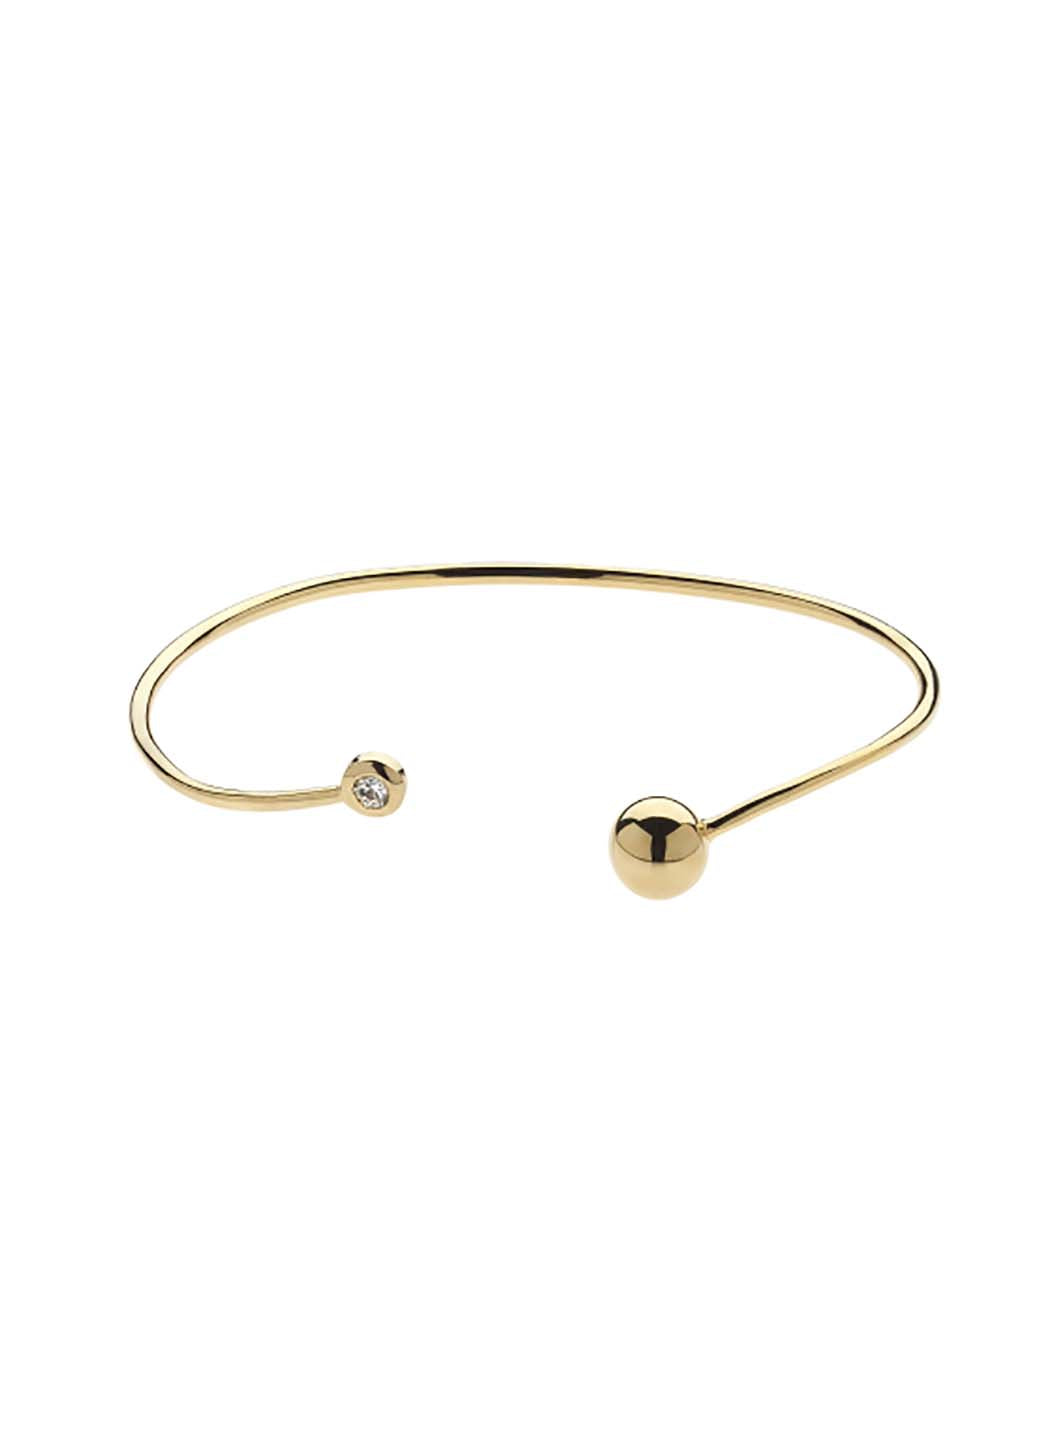 Gold Swarovski Ball Bangle